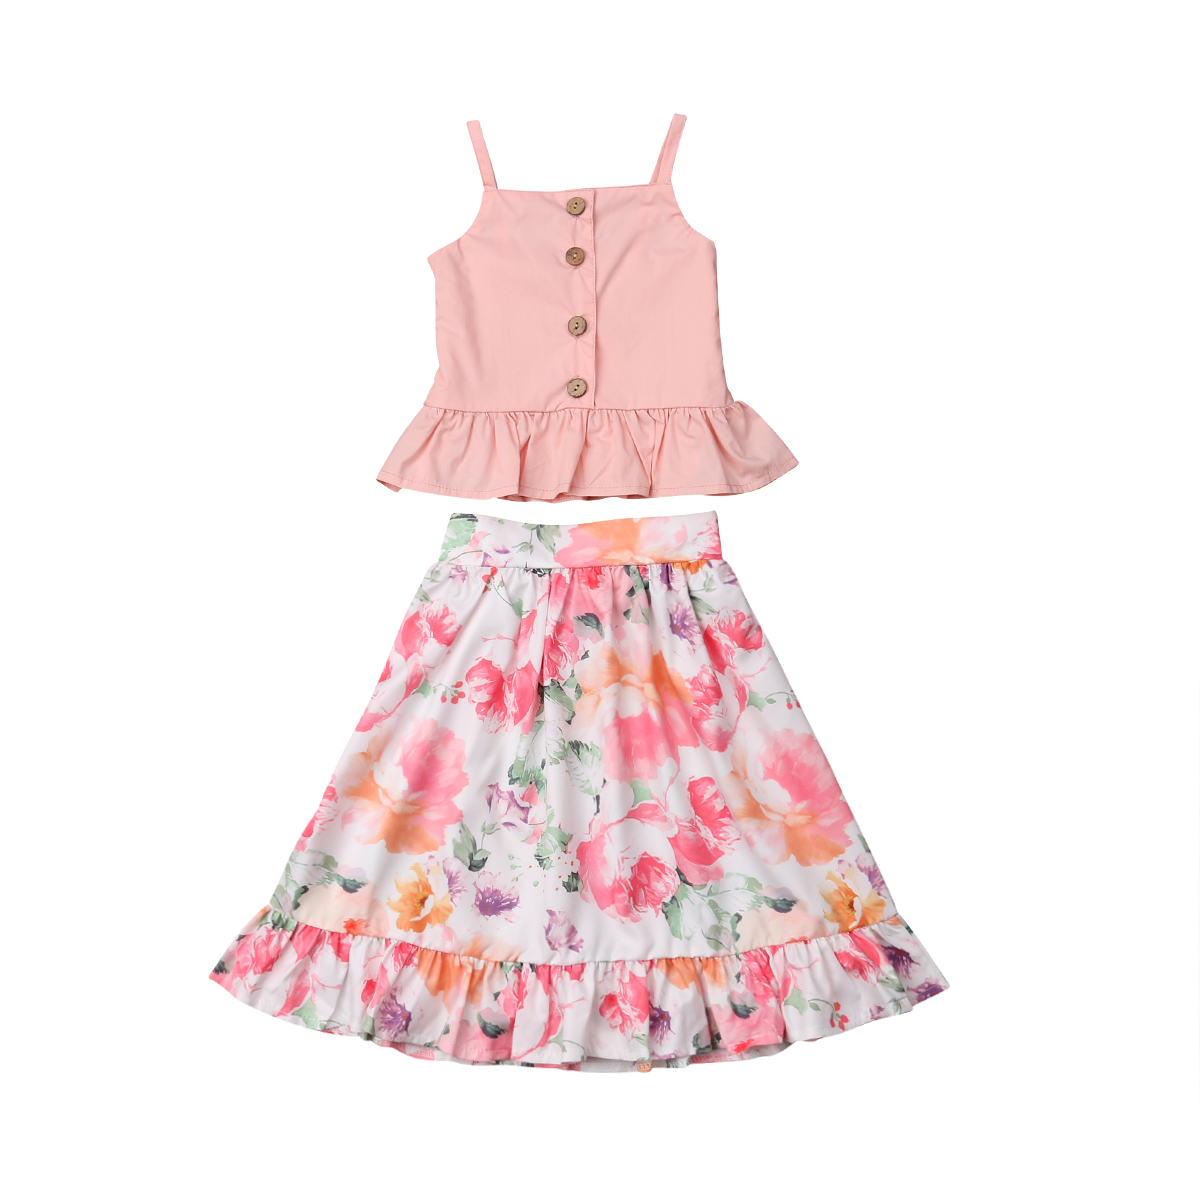 Emmababy 2PCS Toddler Kids Baby Girls Clothes Cute Pink T-shirt Sleeveless Tops Floral Skirt Summer Outfits